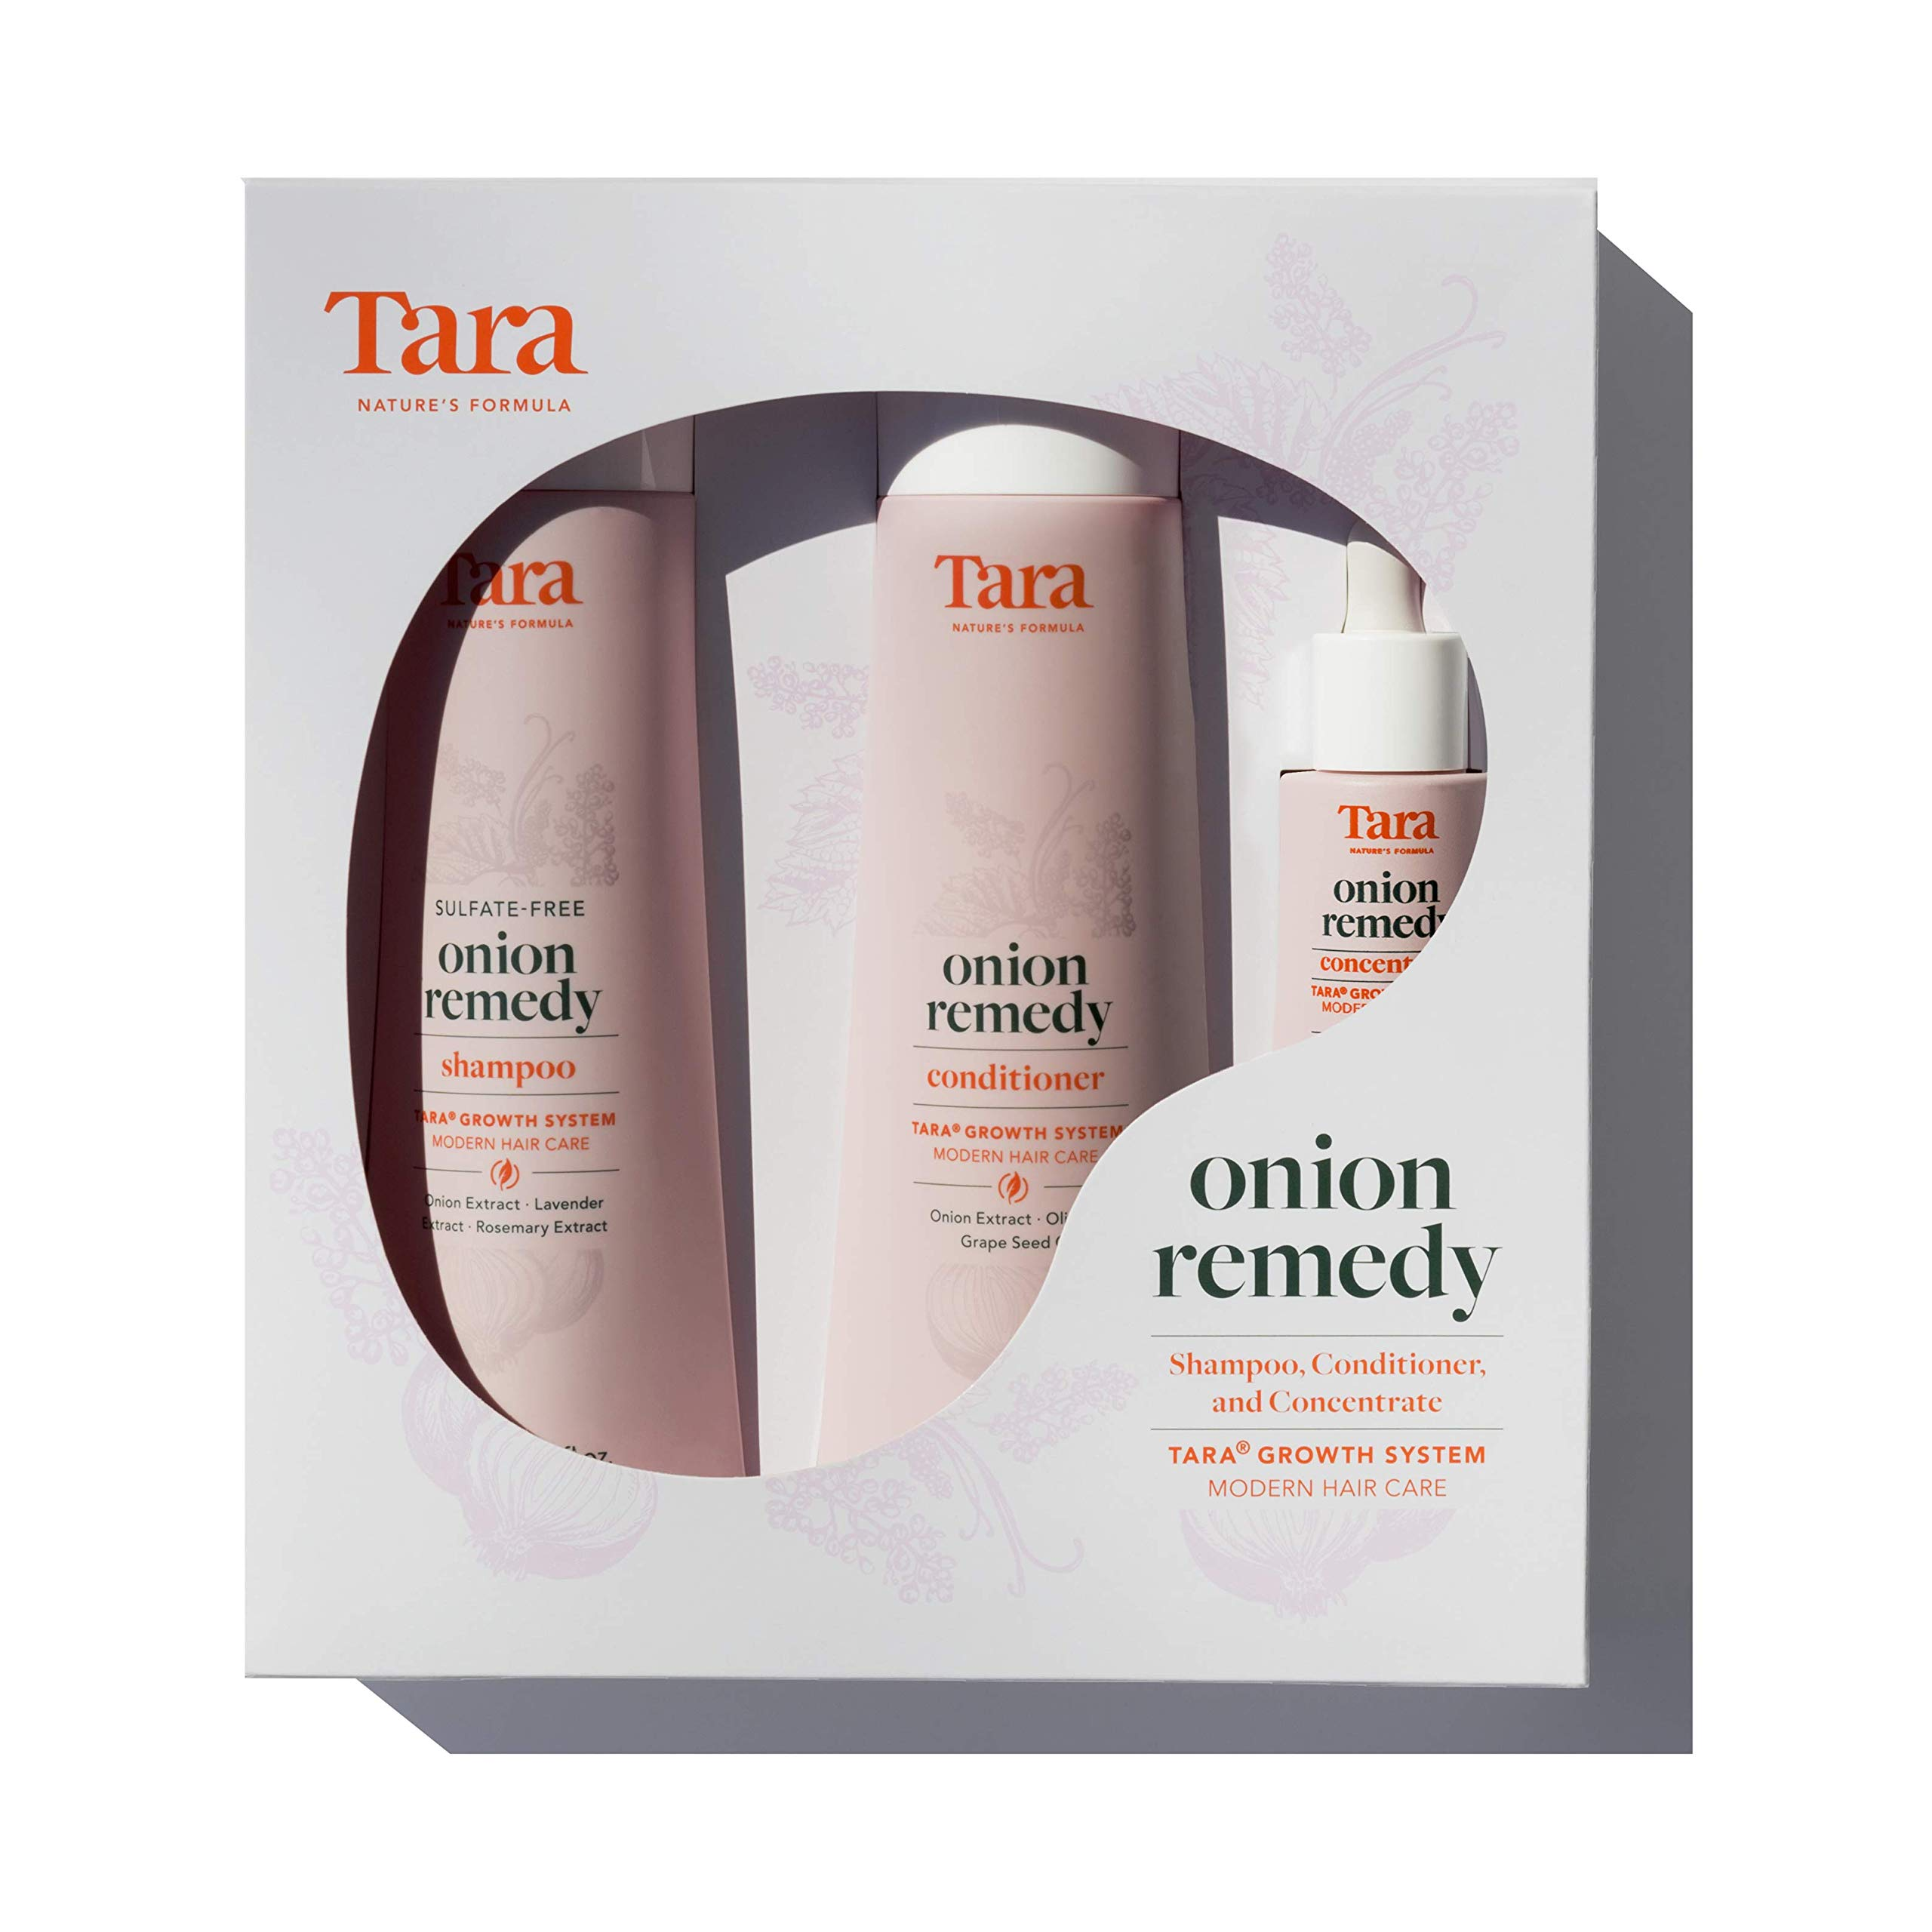 Tara Nature's Formula Onion Remedy Hair & Root Revival System Concentrate, Shampoo and Conditioner Set - Formulated To Hair Thicker and Fuller, Hair Follicles and Scalp Treatment - 3 Pc Set